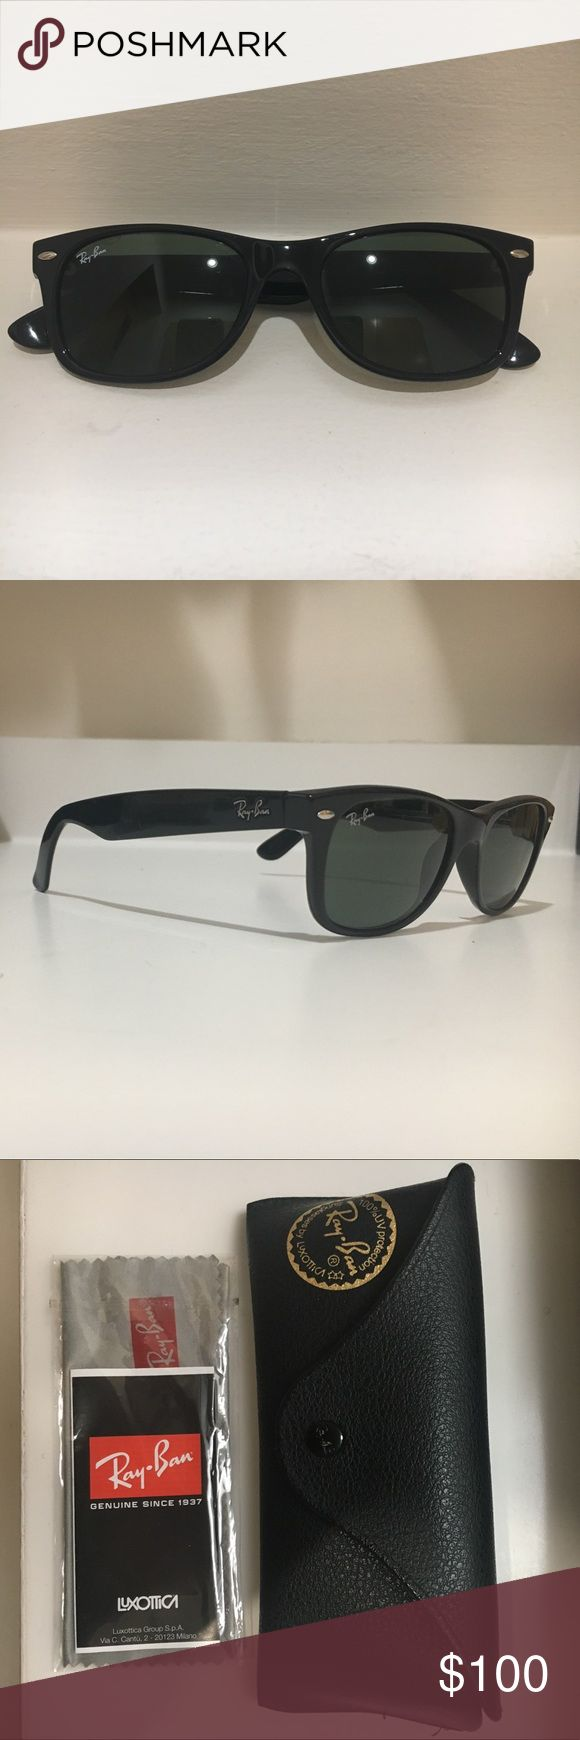 Ray-Ban Wayfarer Sunglasses Size 52 Black Like New Black Ray-Ban Wayfarer sunglasses. Lightly used, like new. With original free case and cleaning cloth. Case has slight tear in corner. Ray-Ban Accessories Sunglasses